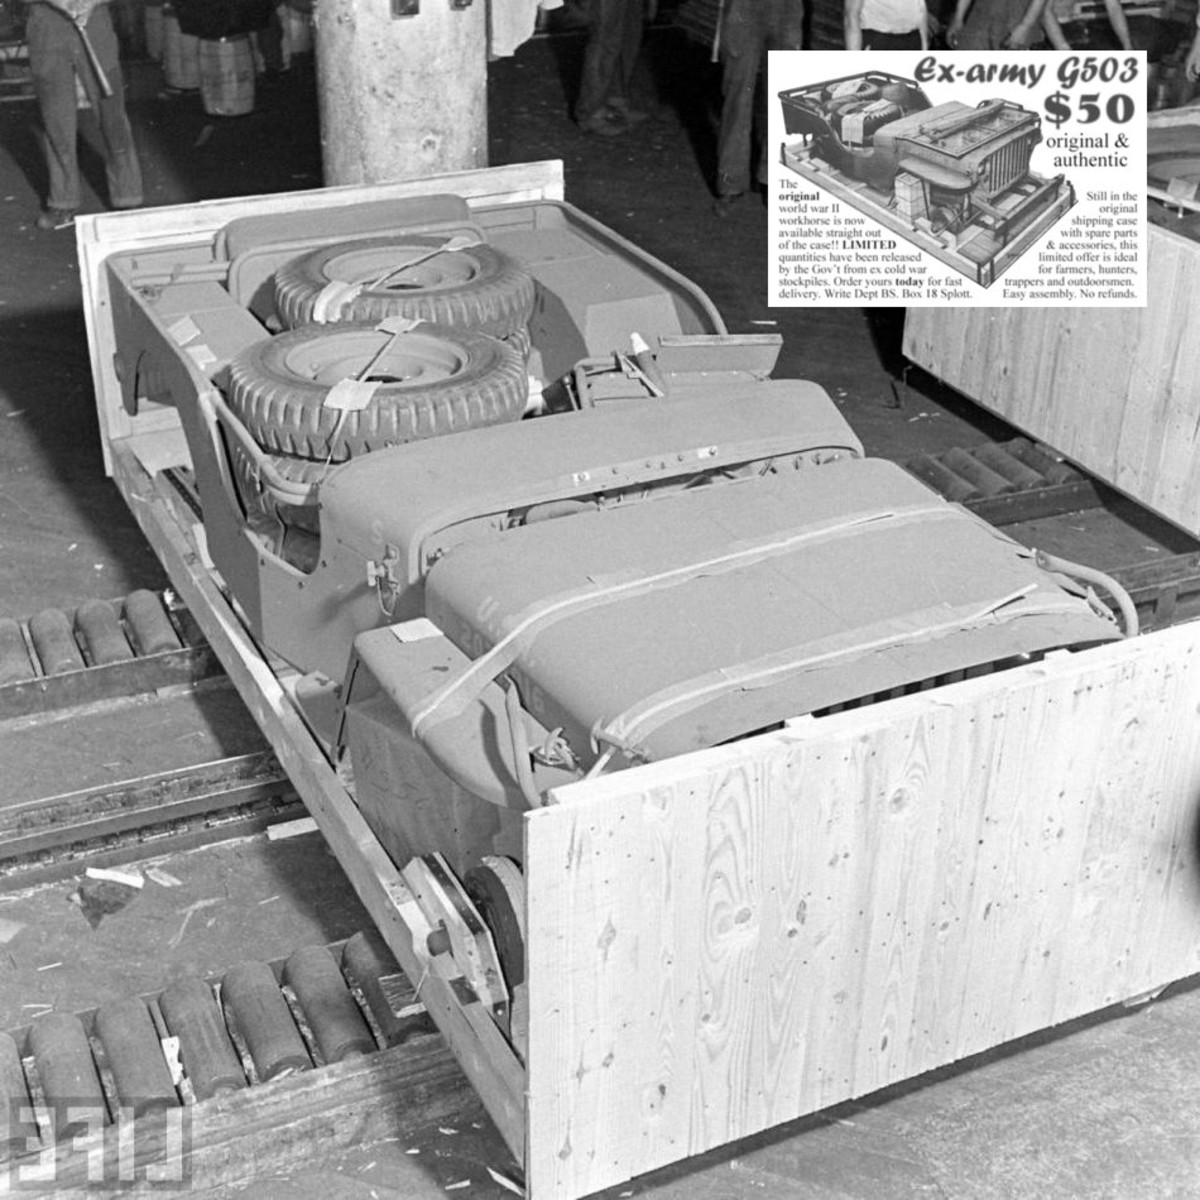 Period photo from Life magazine with a WWII Jeep in a Crate. Attached is one of the ads that appeared in many magazines advertising these boxed wonders for only $50.